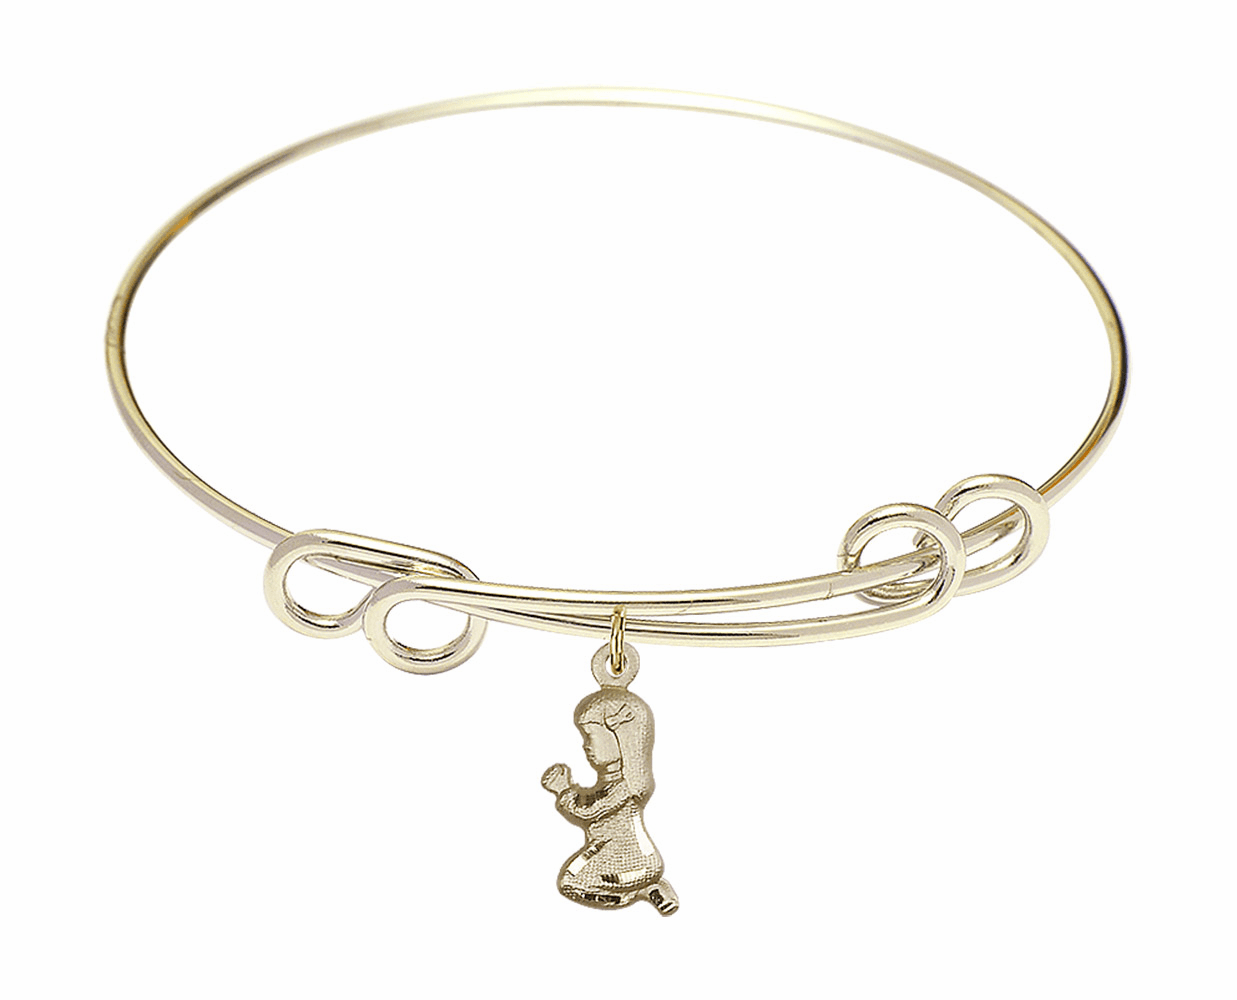 Round Double Loop Bangle Bracelet w/Praying Girl by Bliss Mfg